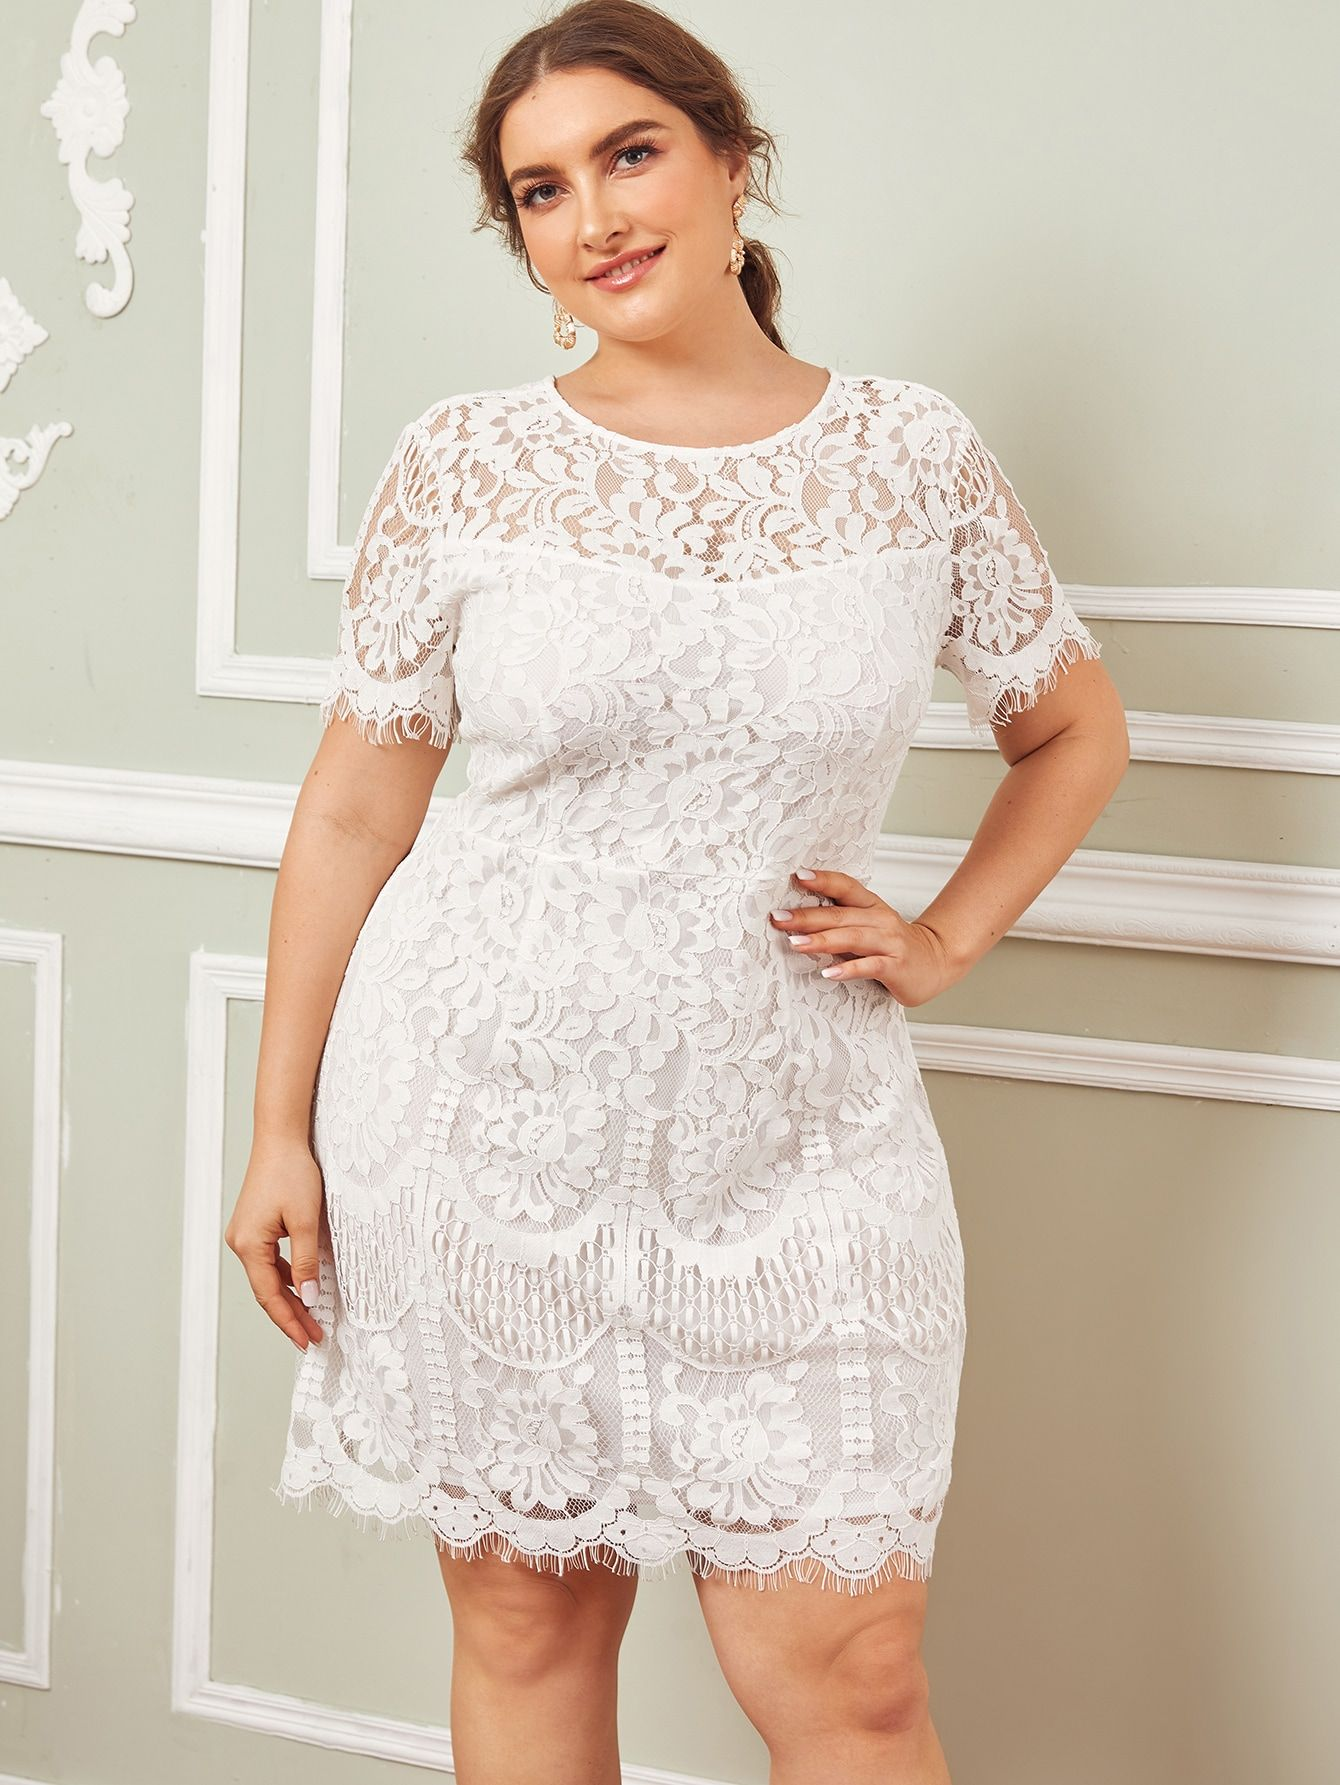 Plus Floral Lace Overlay Dress Lace Overlay Dress Dresses Lace Overlay [ 1785 x 1340 Pixel ]